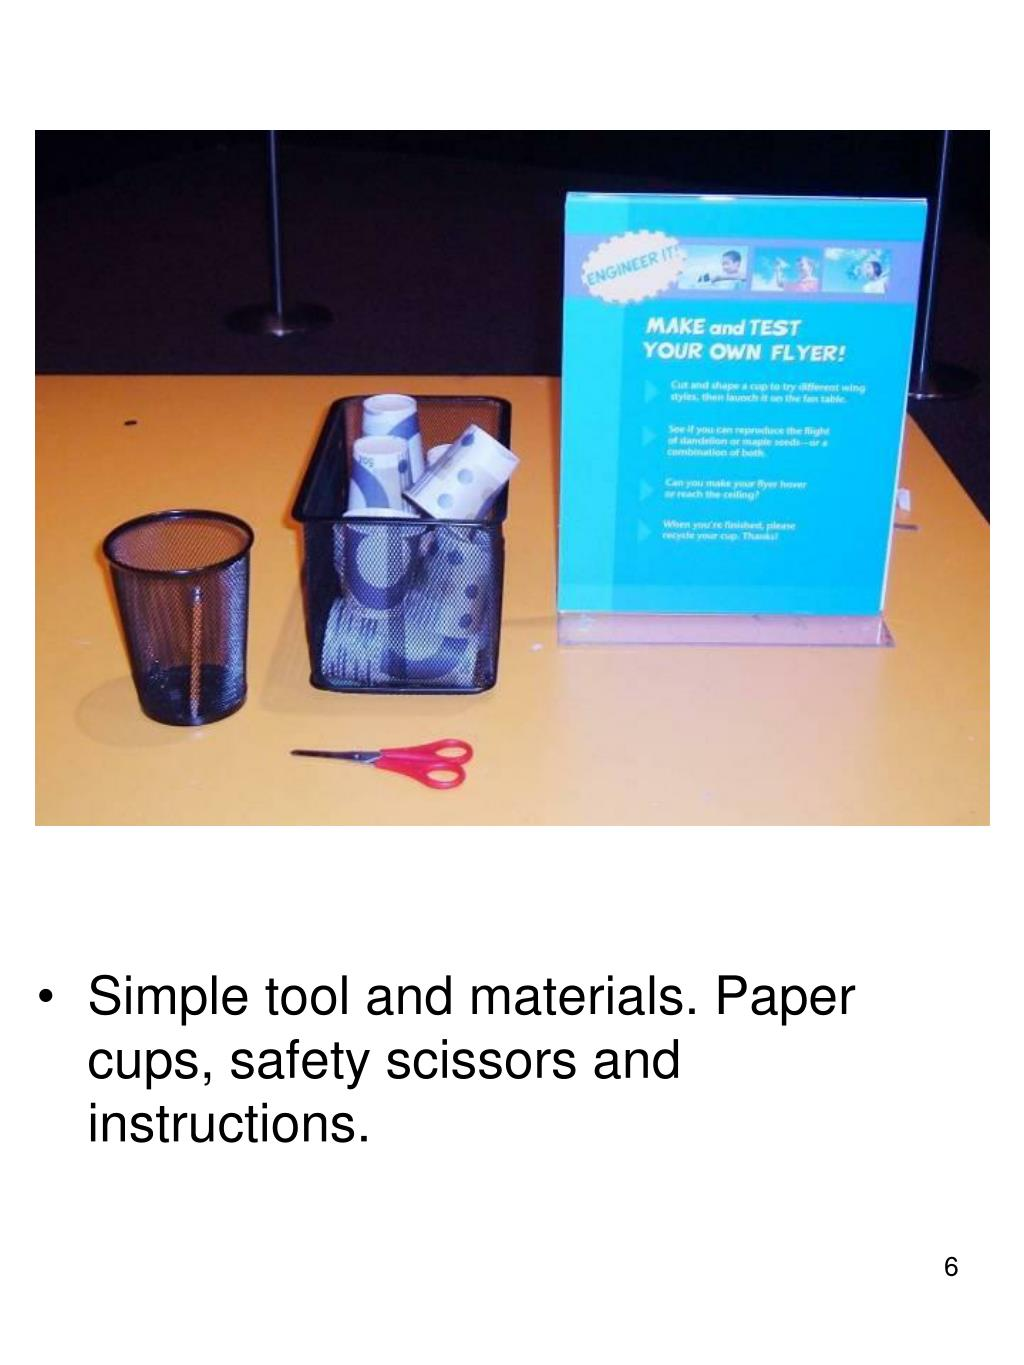 Simple tool and materials. Paper cups, safety scissors and instructions.